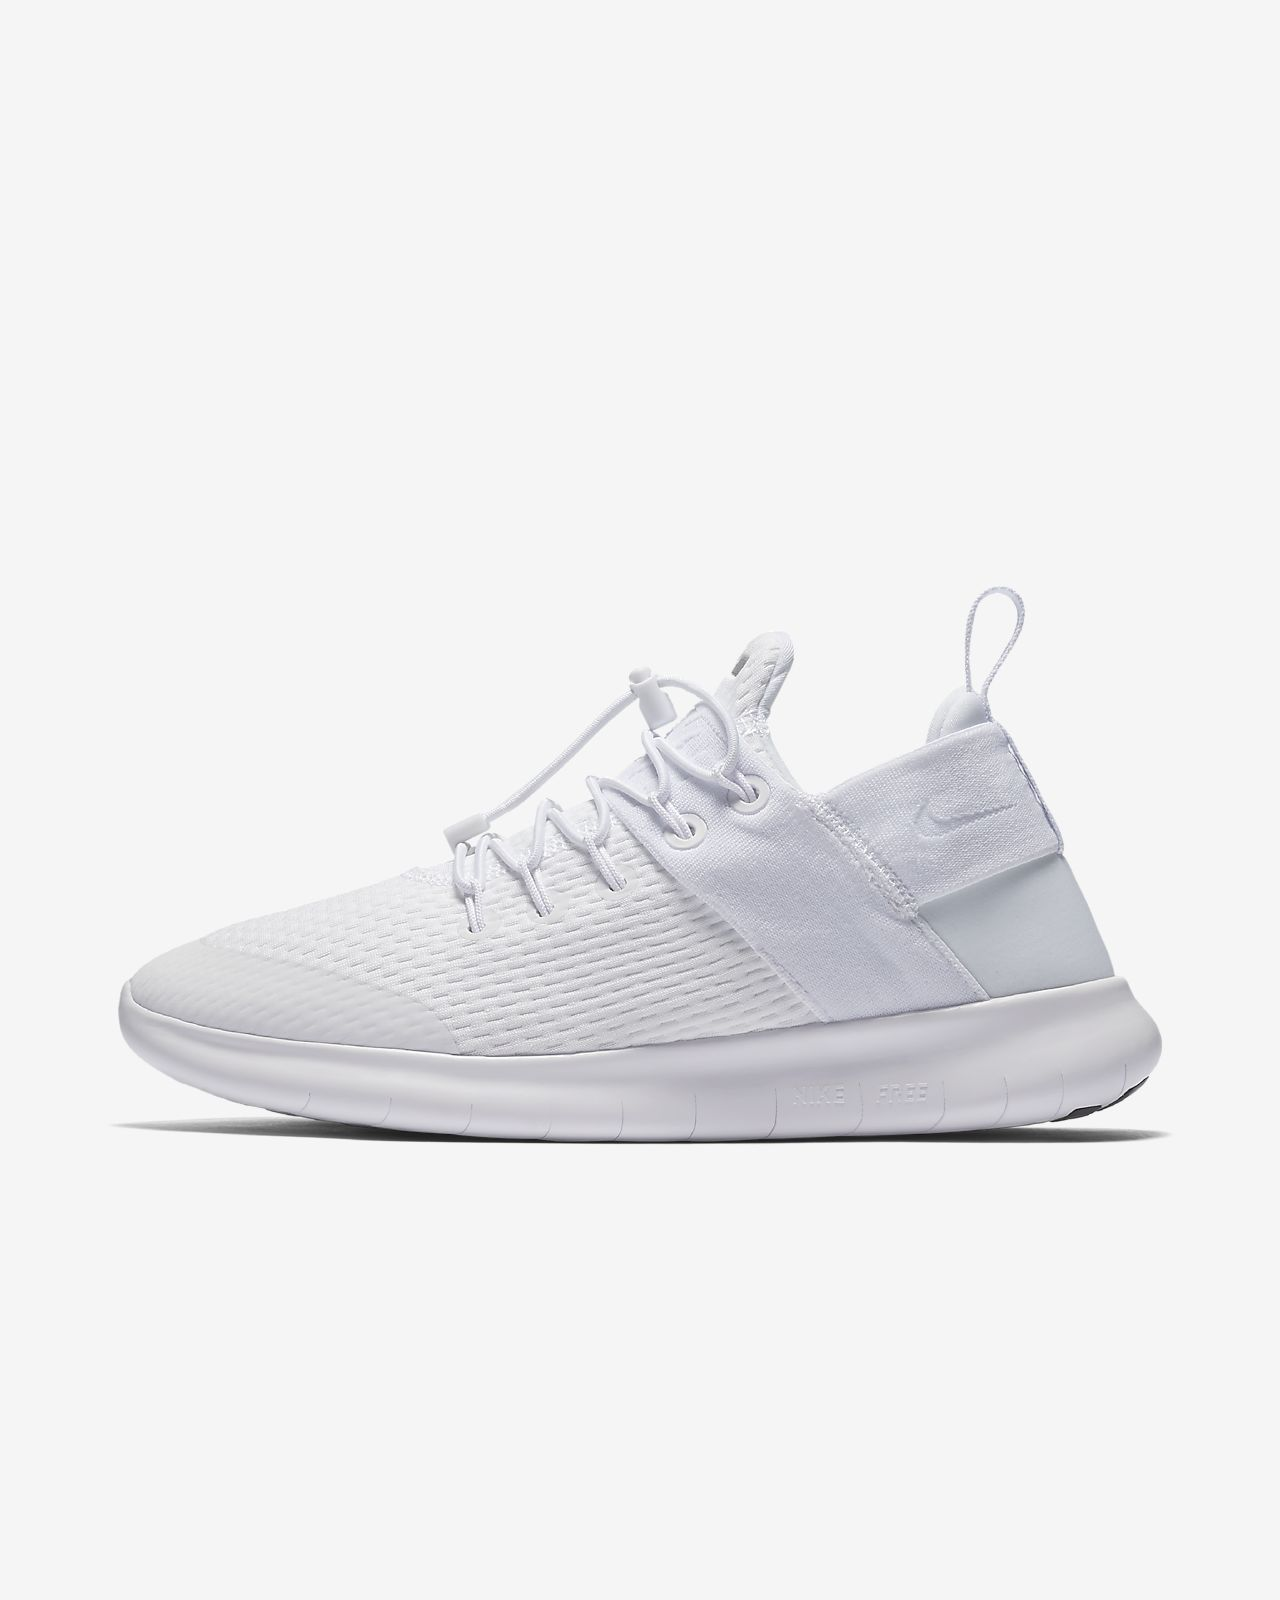 Nike Free RN Commuter 2017 Women's Running Shoes White